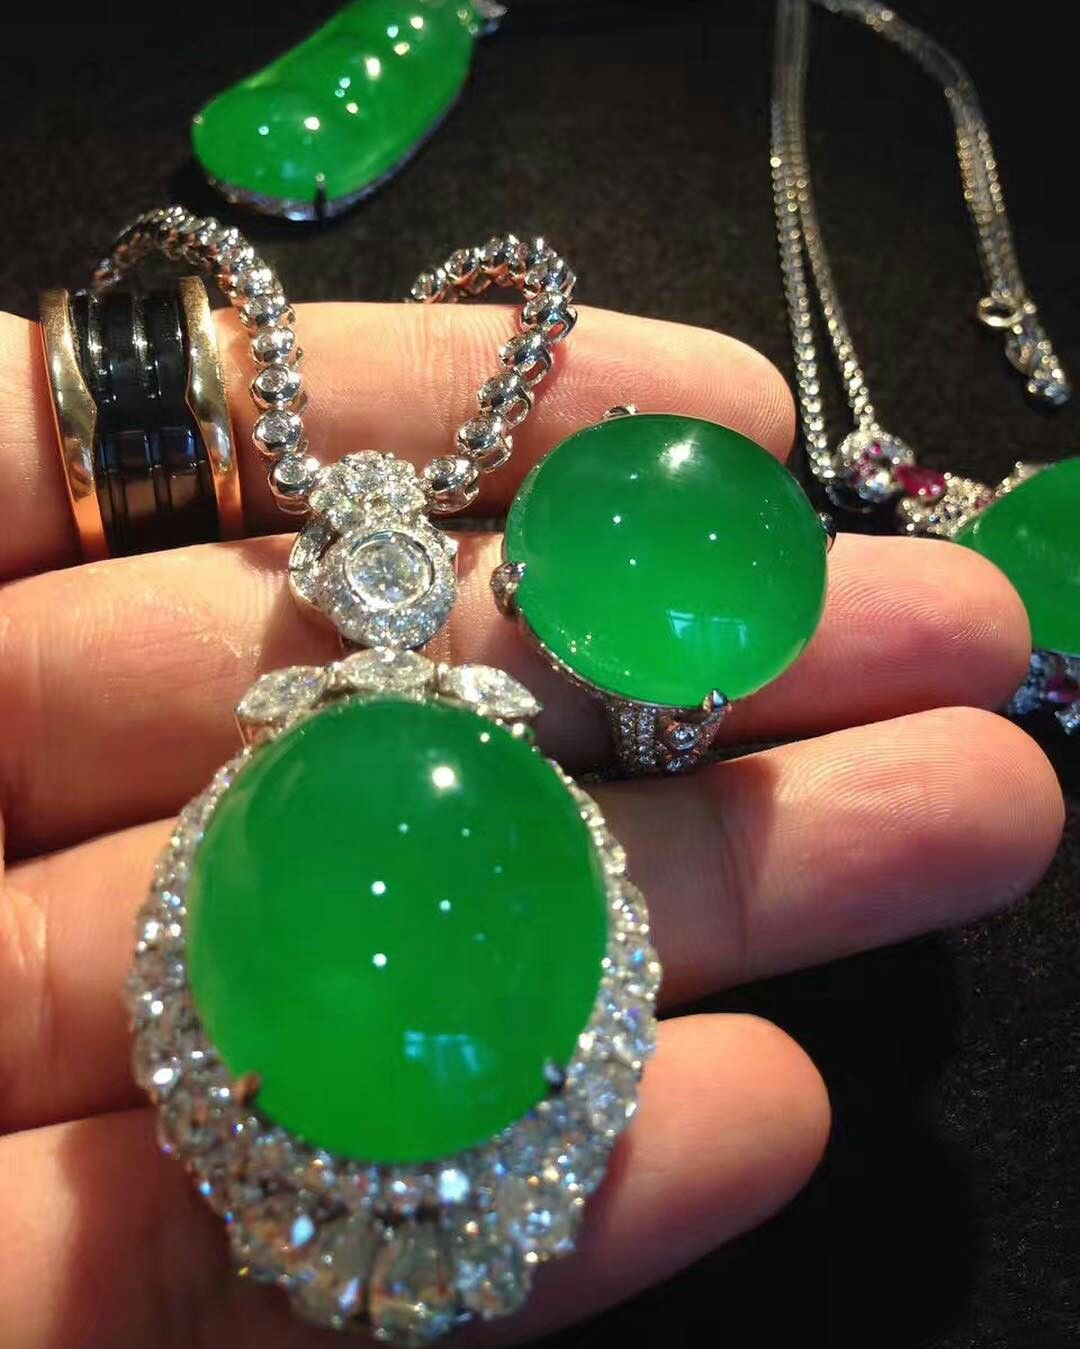 Imperial green jade jewelry jewelry and gemstones for Pictures of jade jewelry